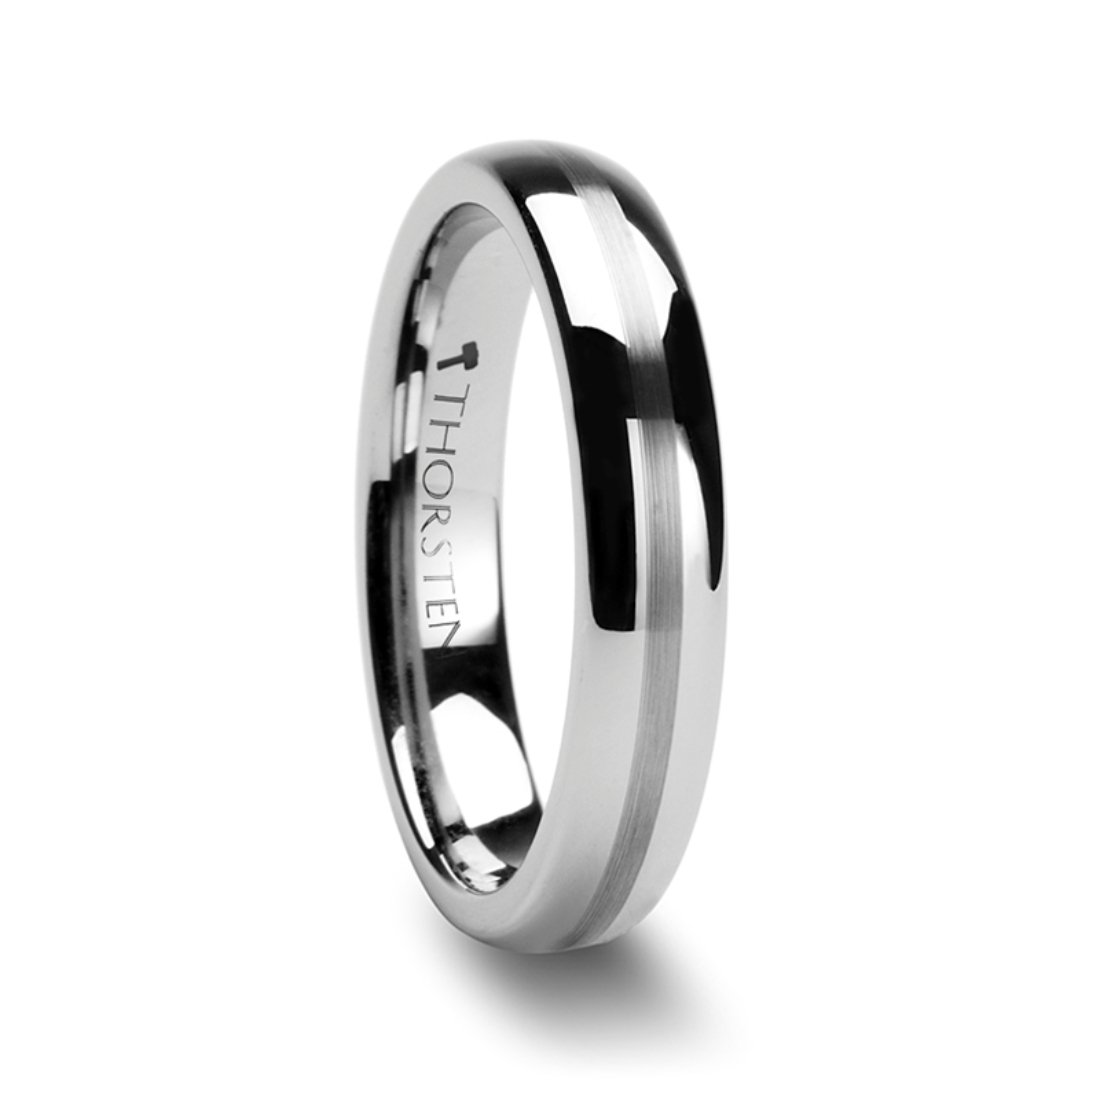 Thorsten BELLATOR Domed with Brushed Center Stripe Polished Tungsten Ring 4mm Wide Wedding Band from Roy Rose Jewelry